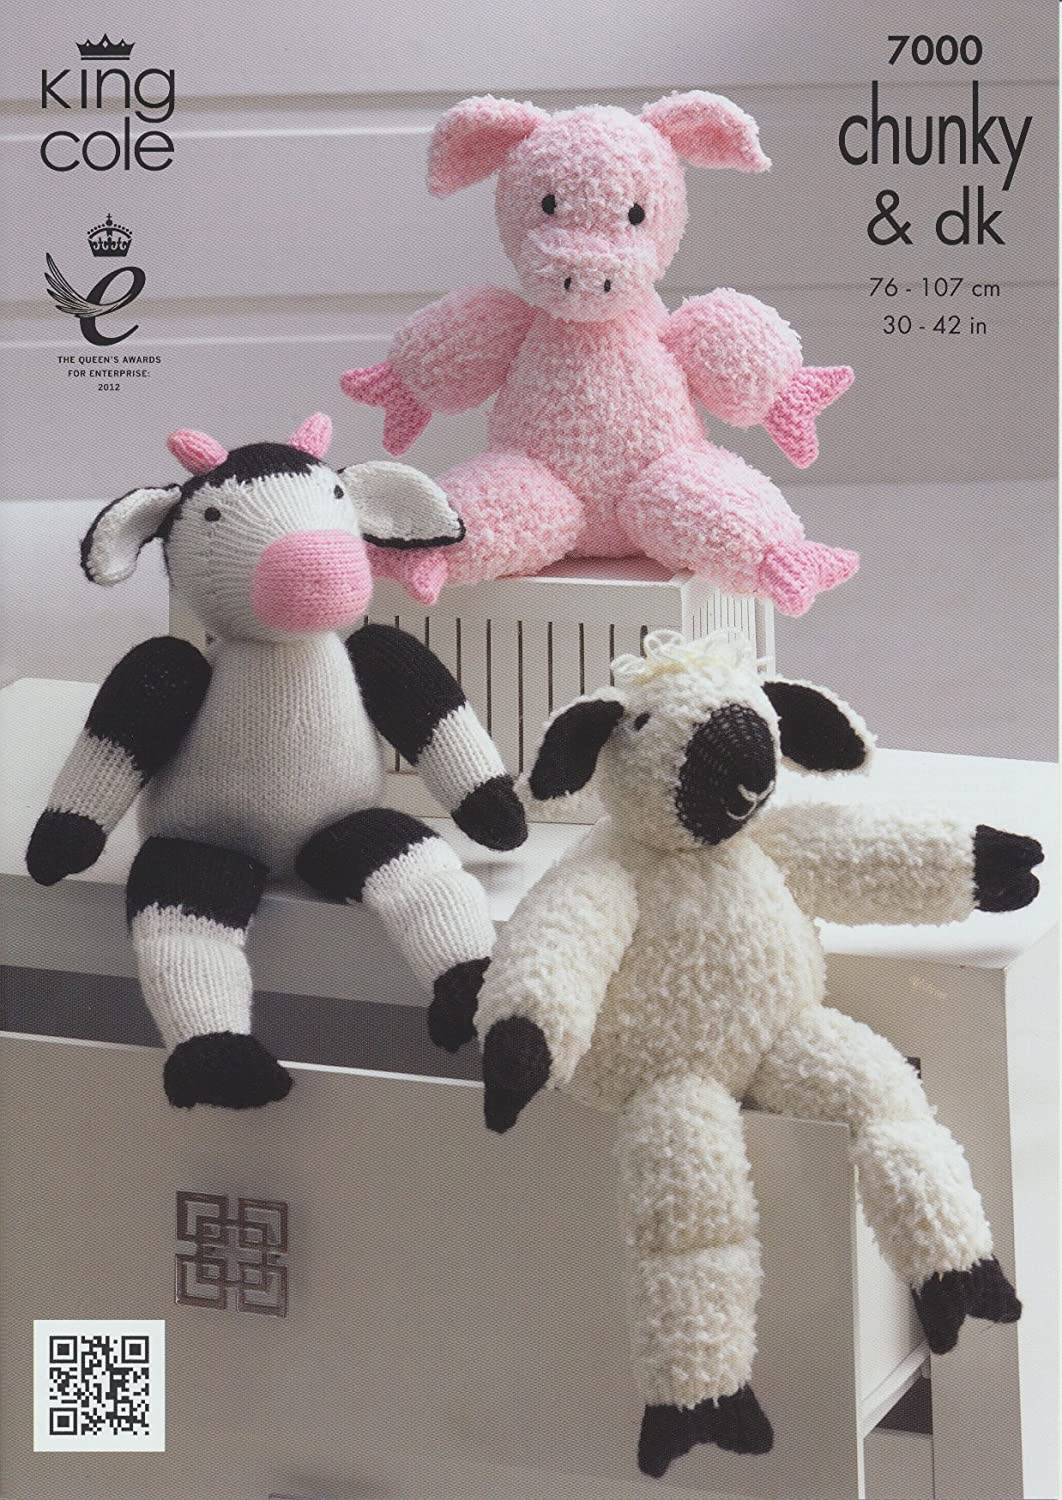 King cole dk knitted farm animal characters double knitting king cole dk knitted farm animal characters double knitting cuddles chunky pattern pig sheep cow amazon kitchen home dt1010fo